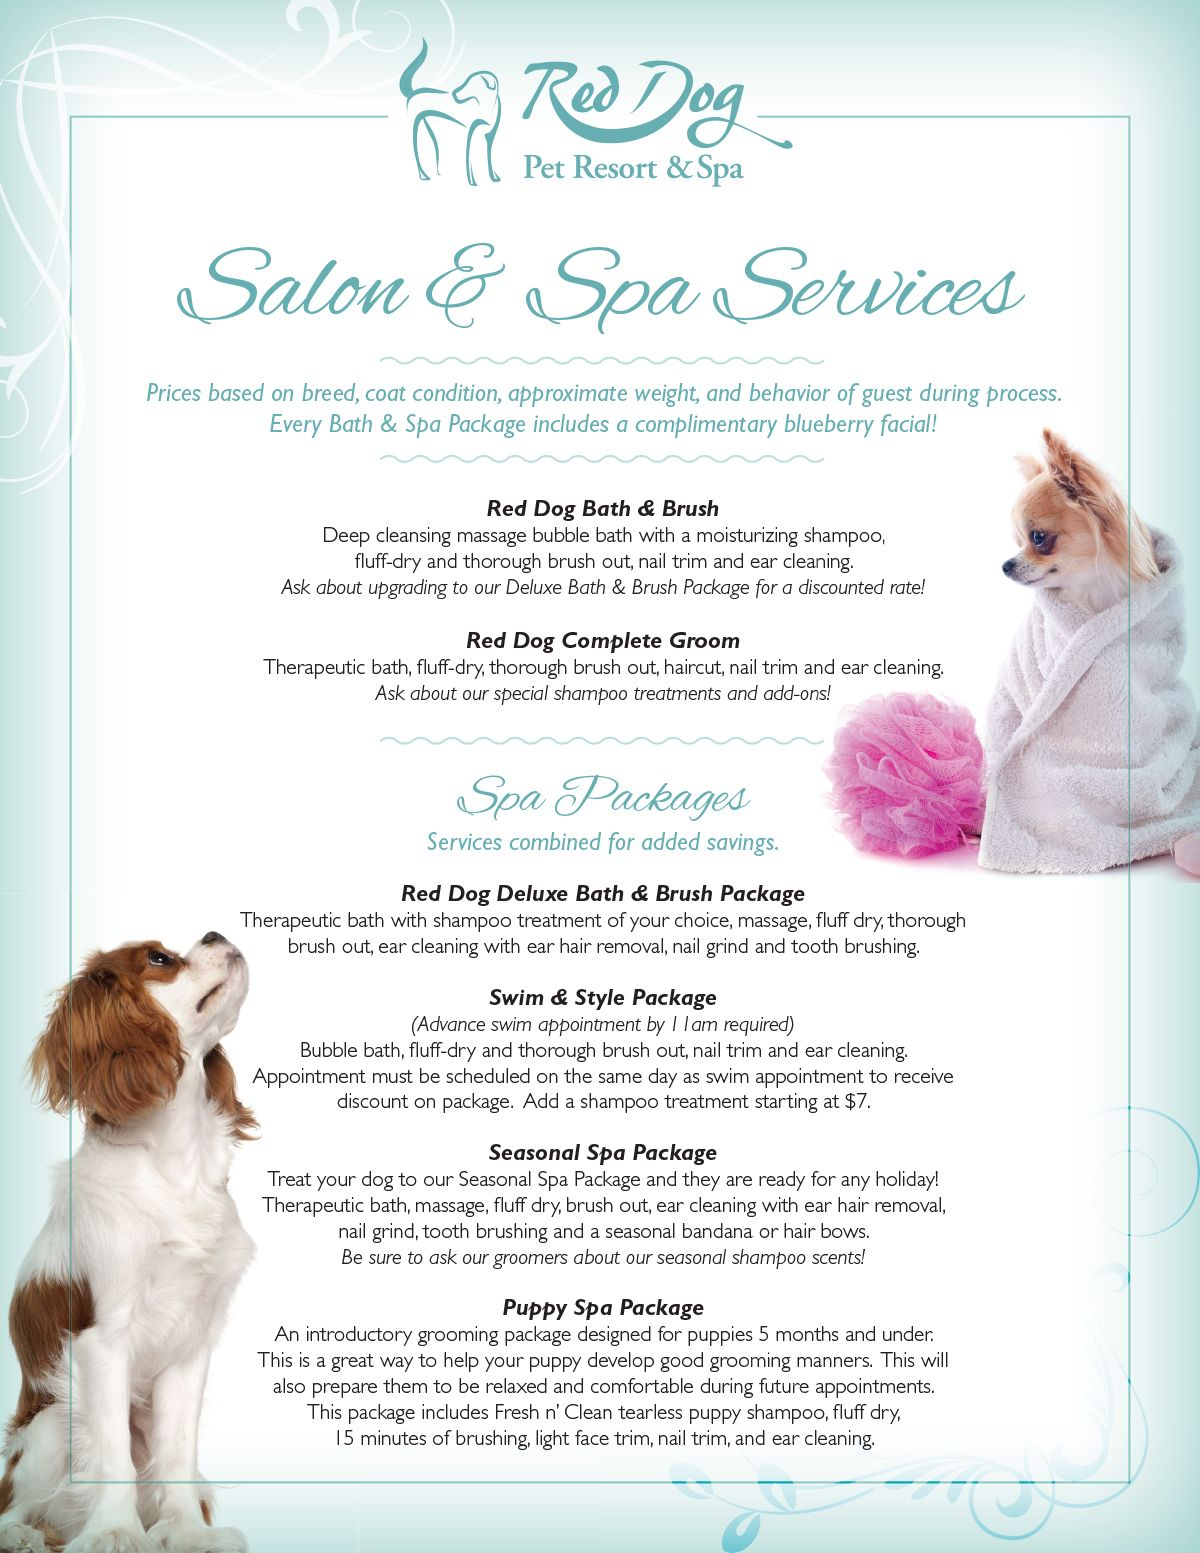 Pin By Georgia Roberts On Dog Grooming Pet Resort Spa Services